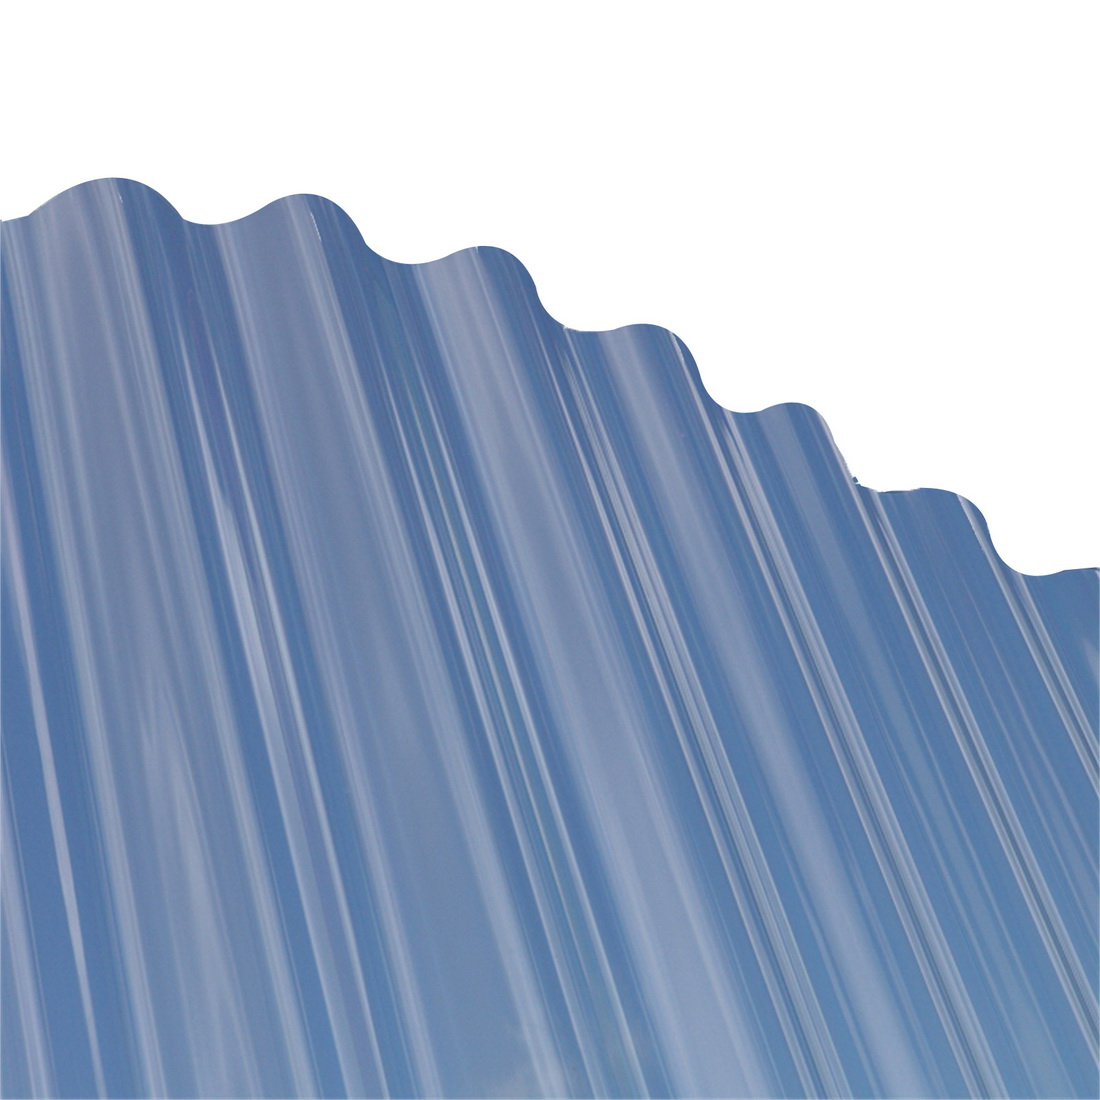 Tufclad Ultra Corrugated Roofing 2400 x 860 x 0.8mm Polycarbonate Clear TFU-CORR-CLR-2400